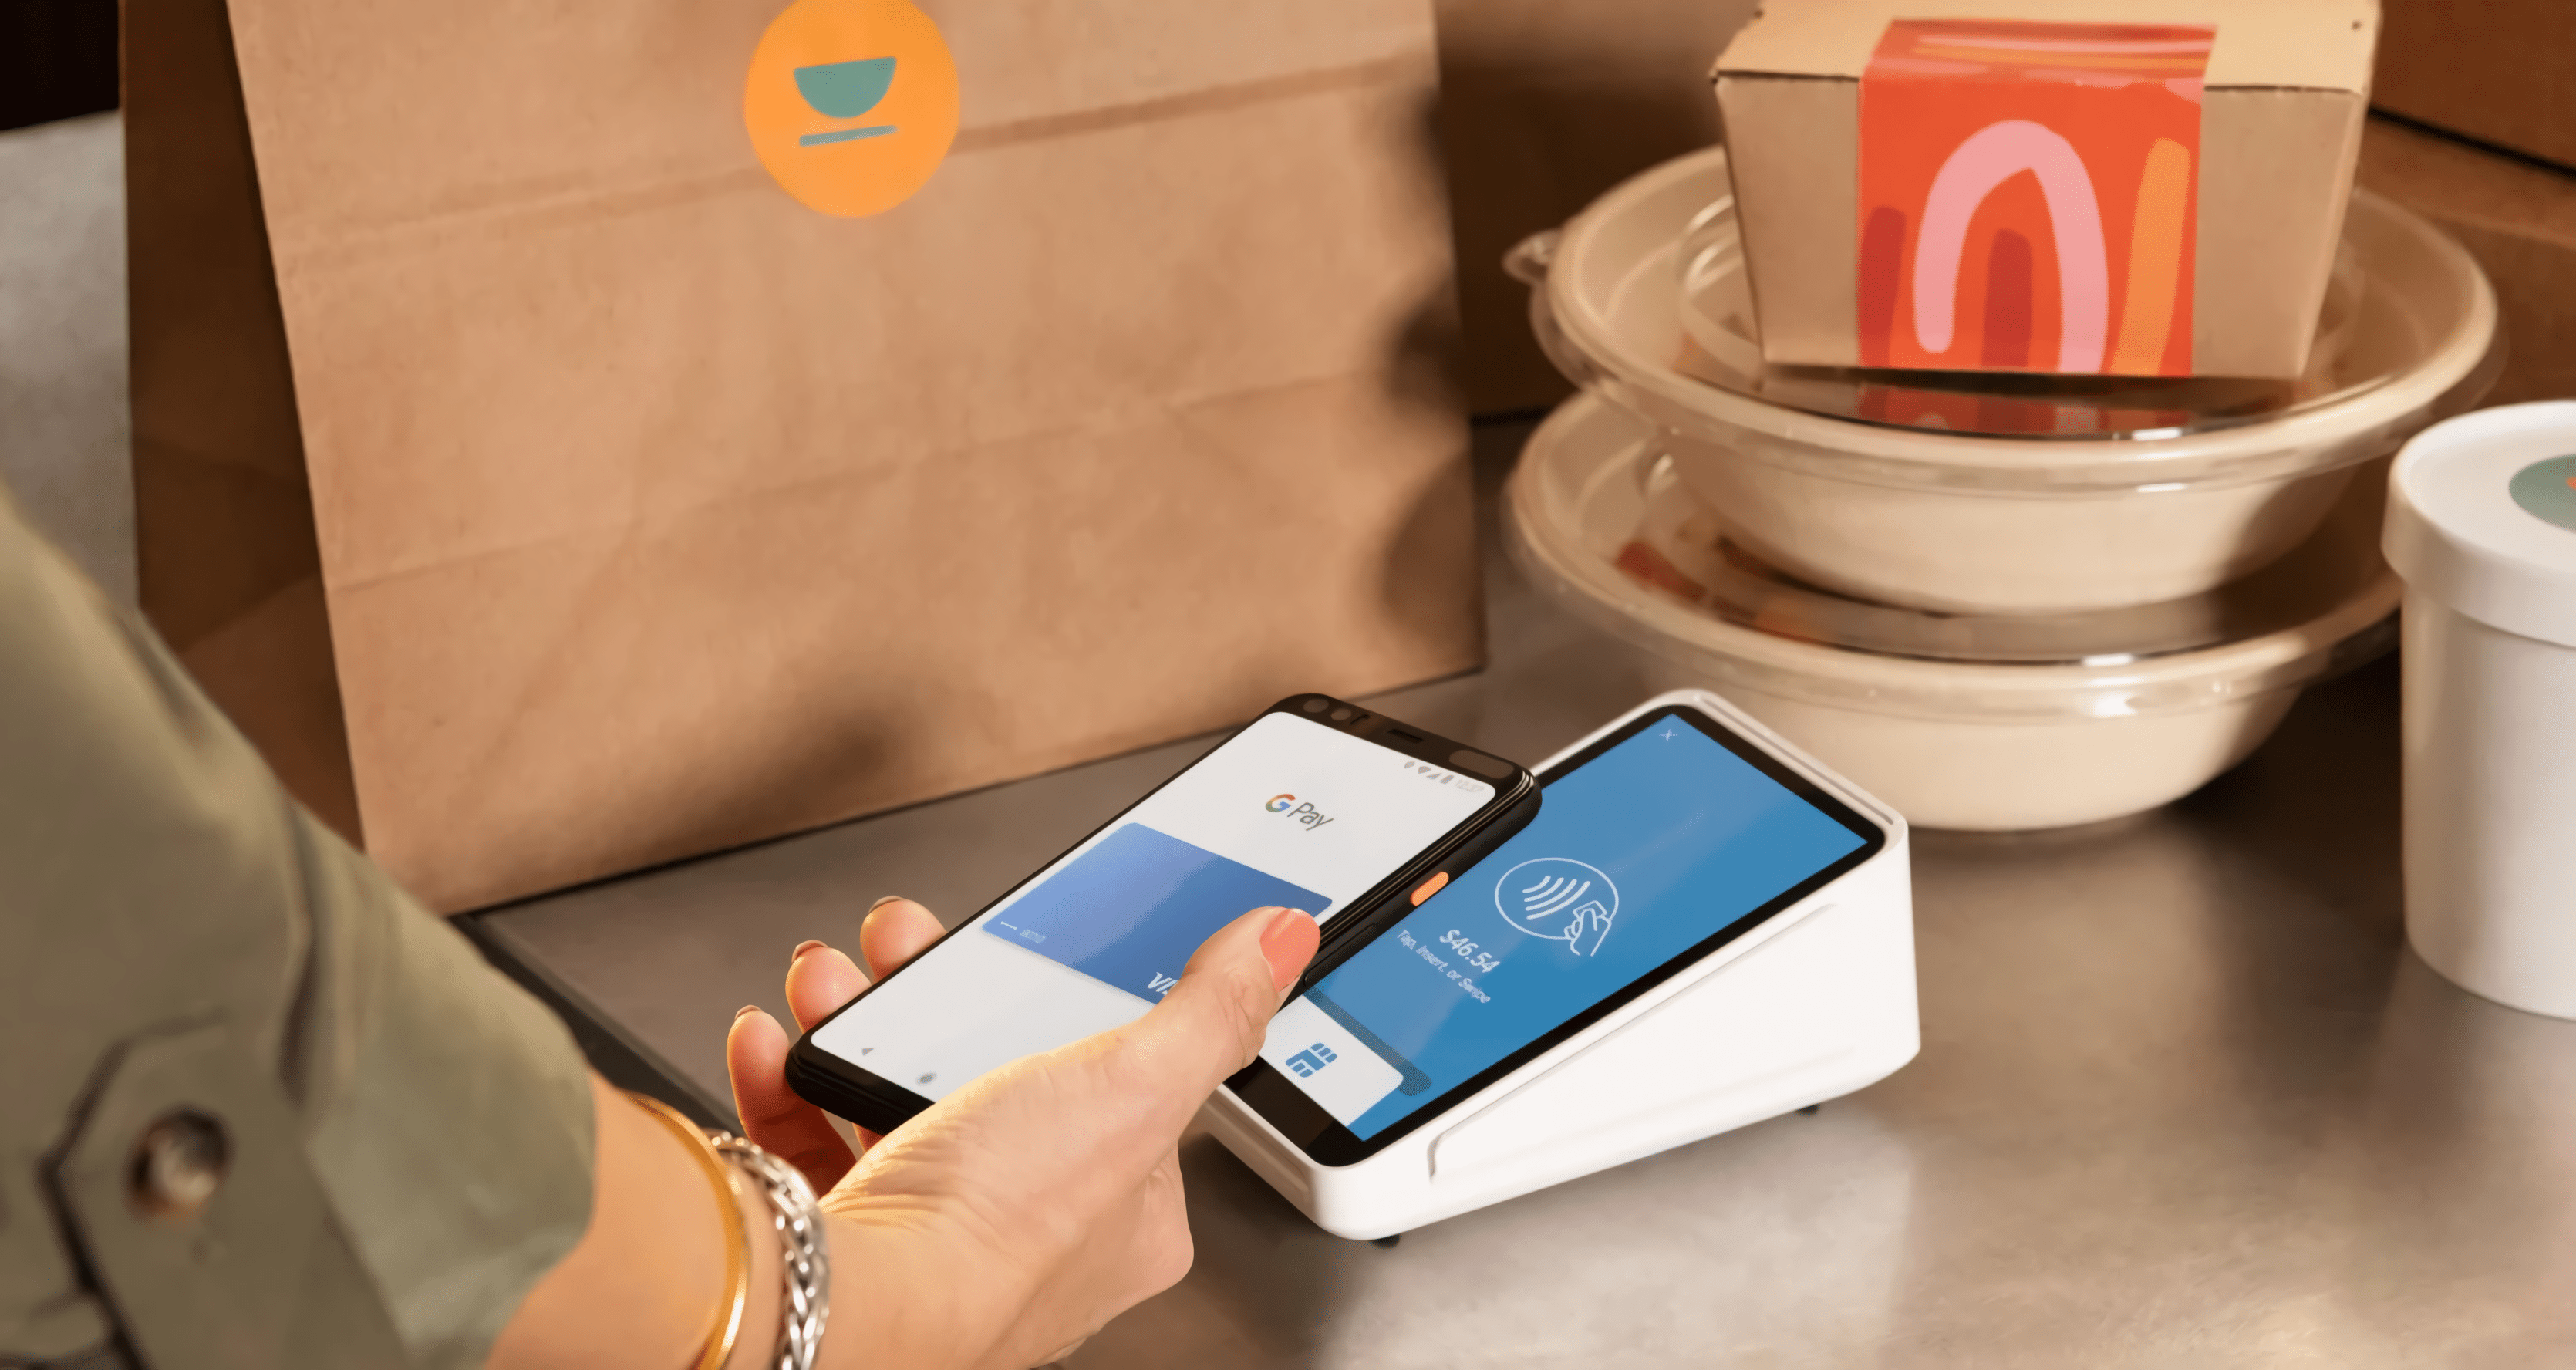 Square, the payment platform led by Jack Dorsey, lands in Spain